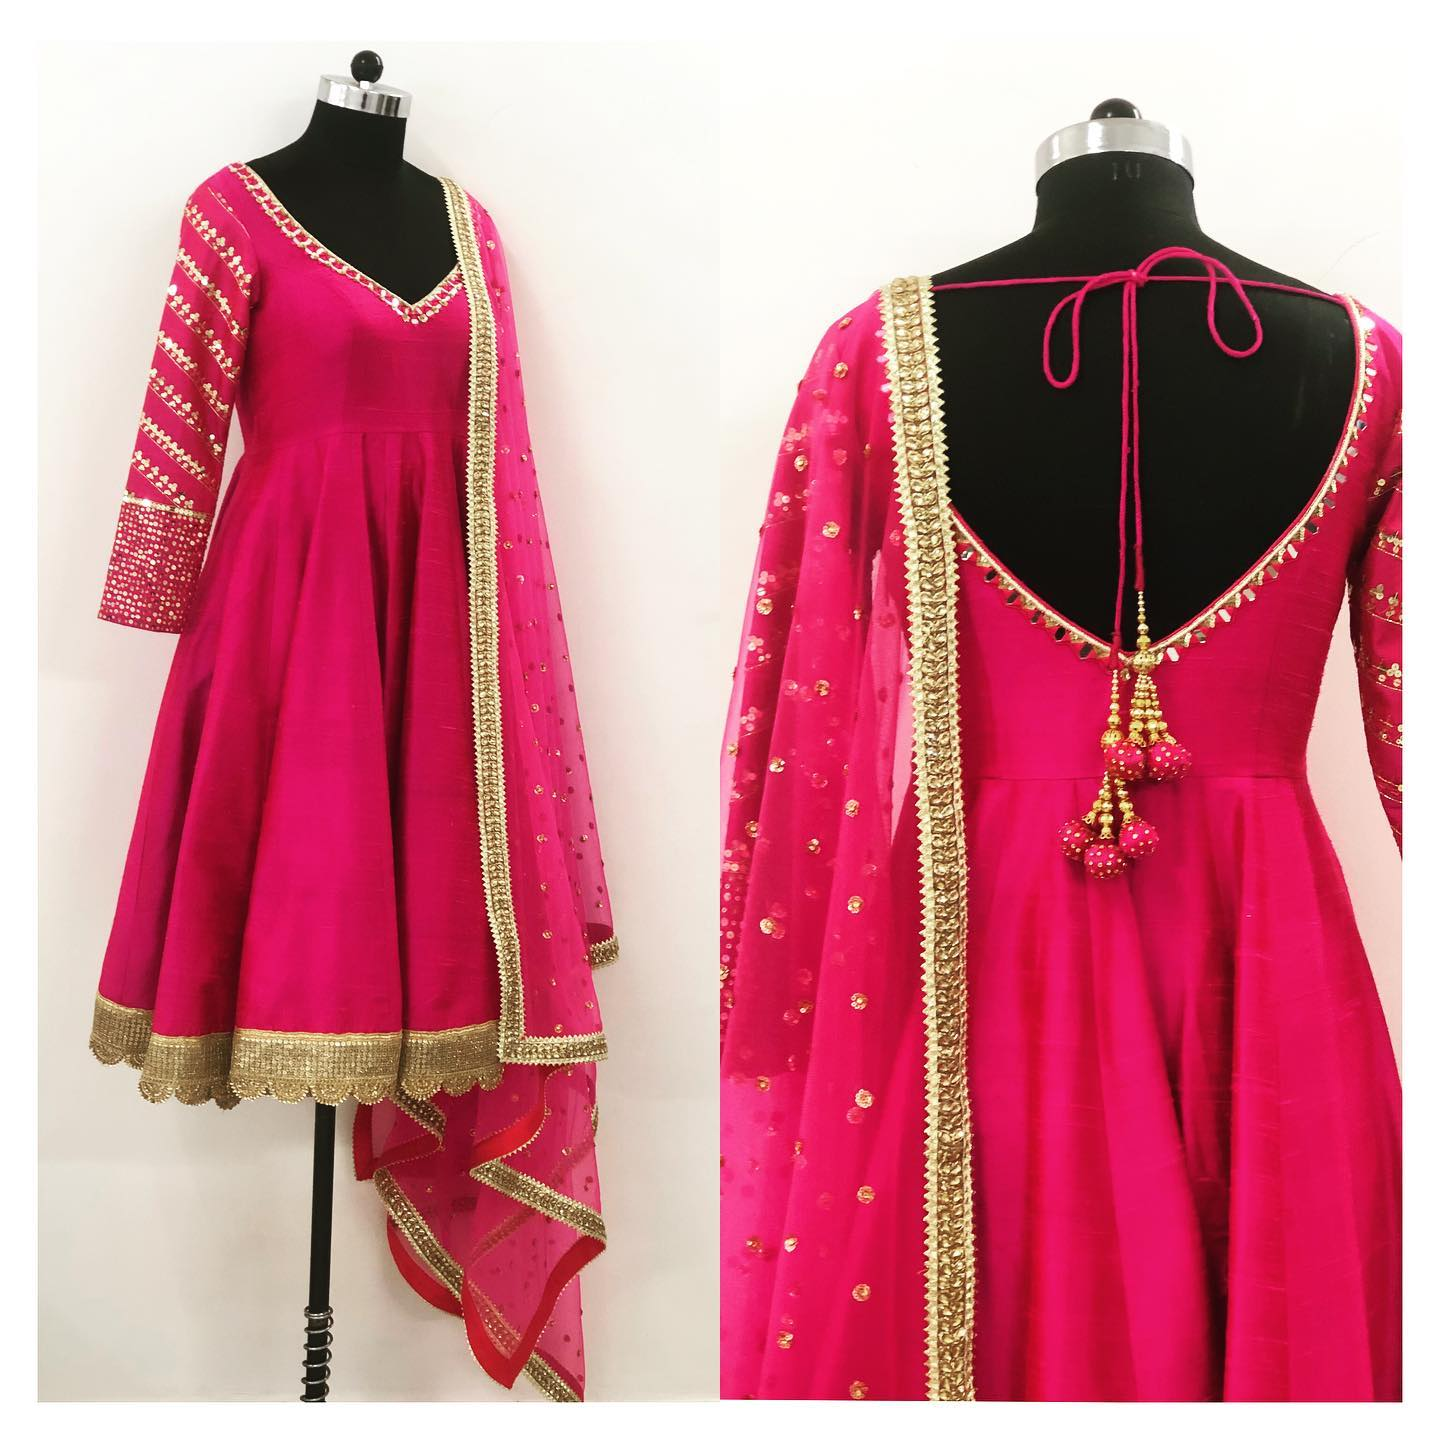 Hot pink hand embroidered anarkali anarkali in pure raw silk.